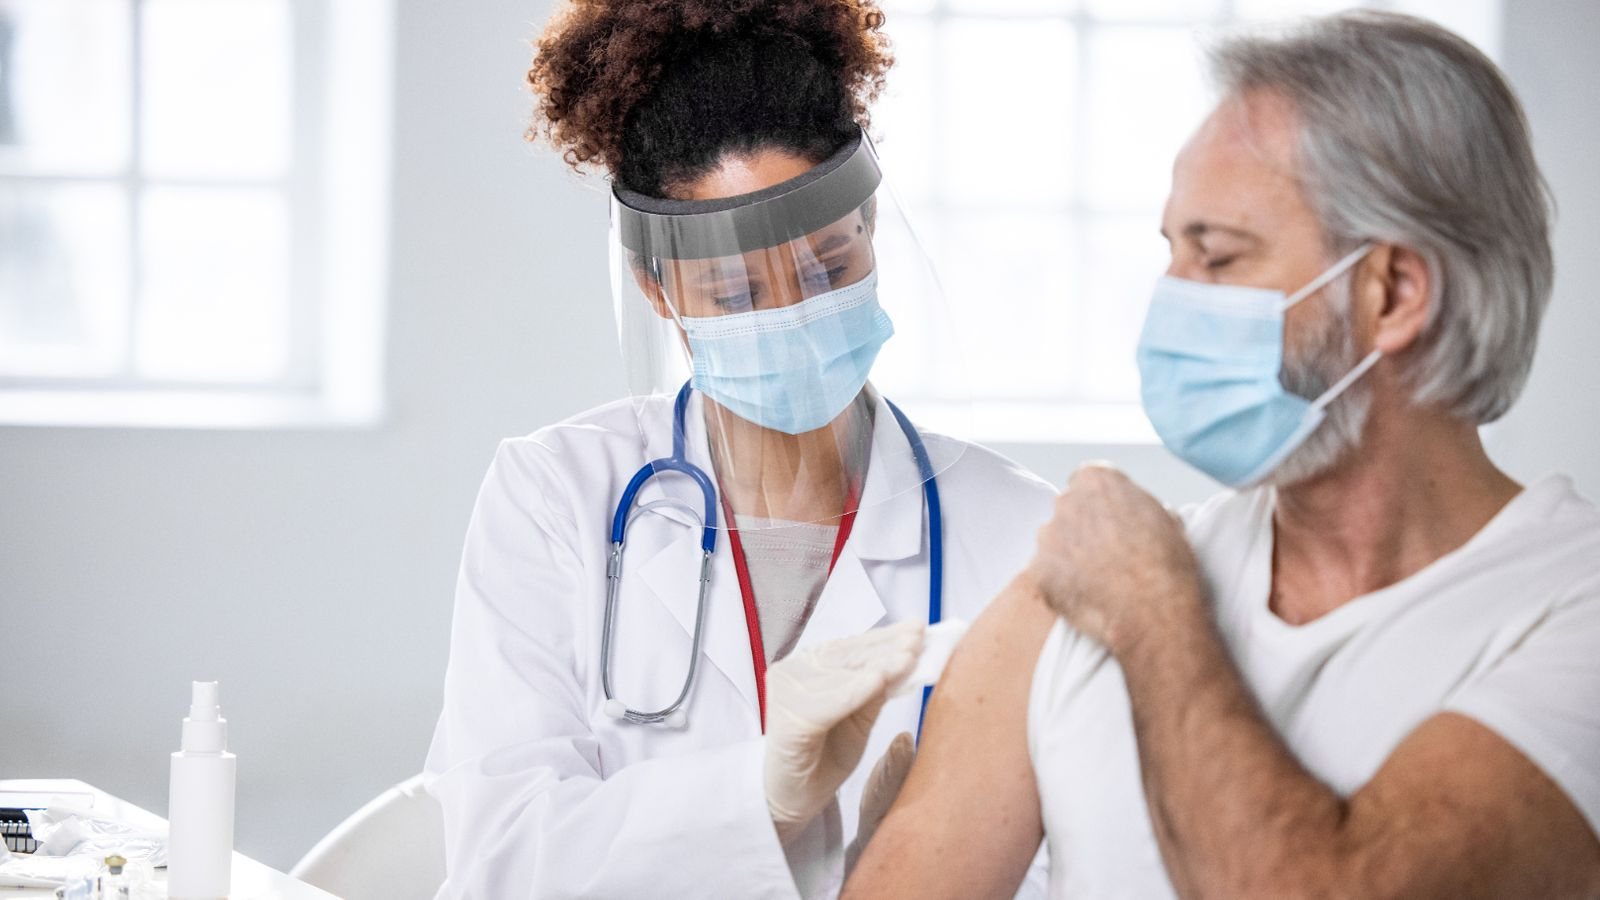 Partial front view of mature Caucasian male patient watching as healthcare worker in lab coat, surgical mask, and face shield swabs injection site.